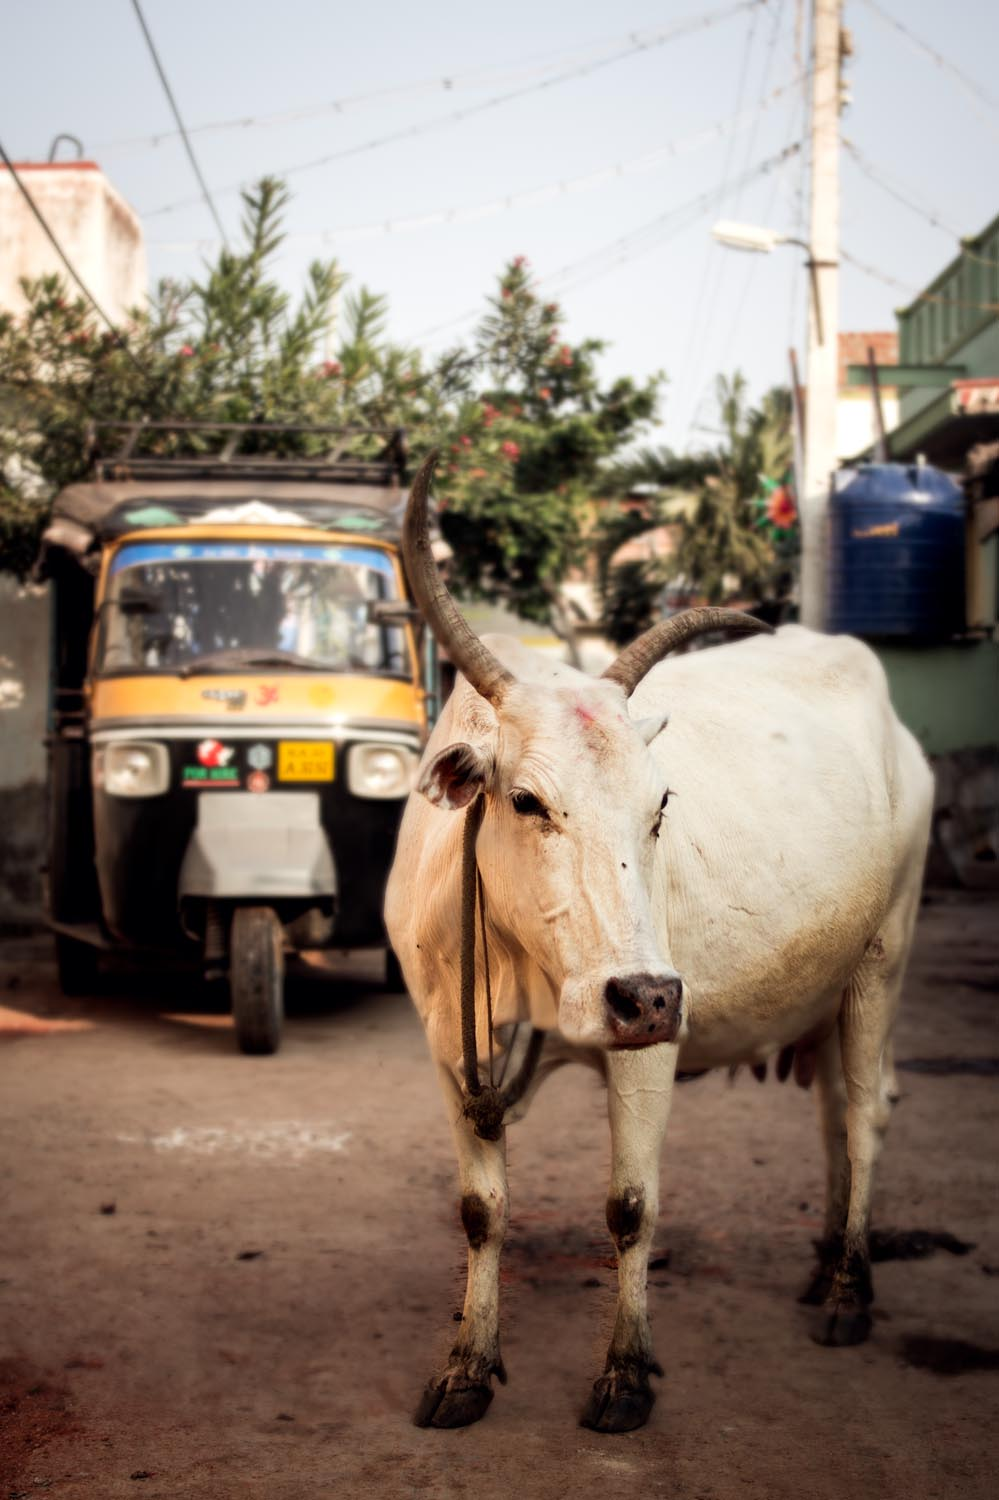 Tuk-Tuk & the Cow